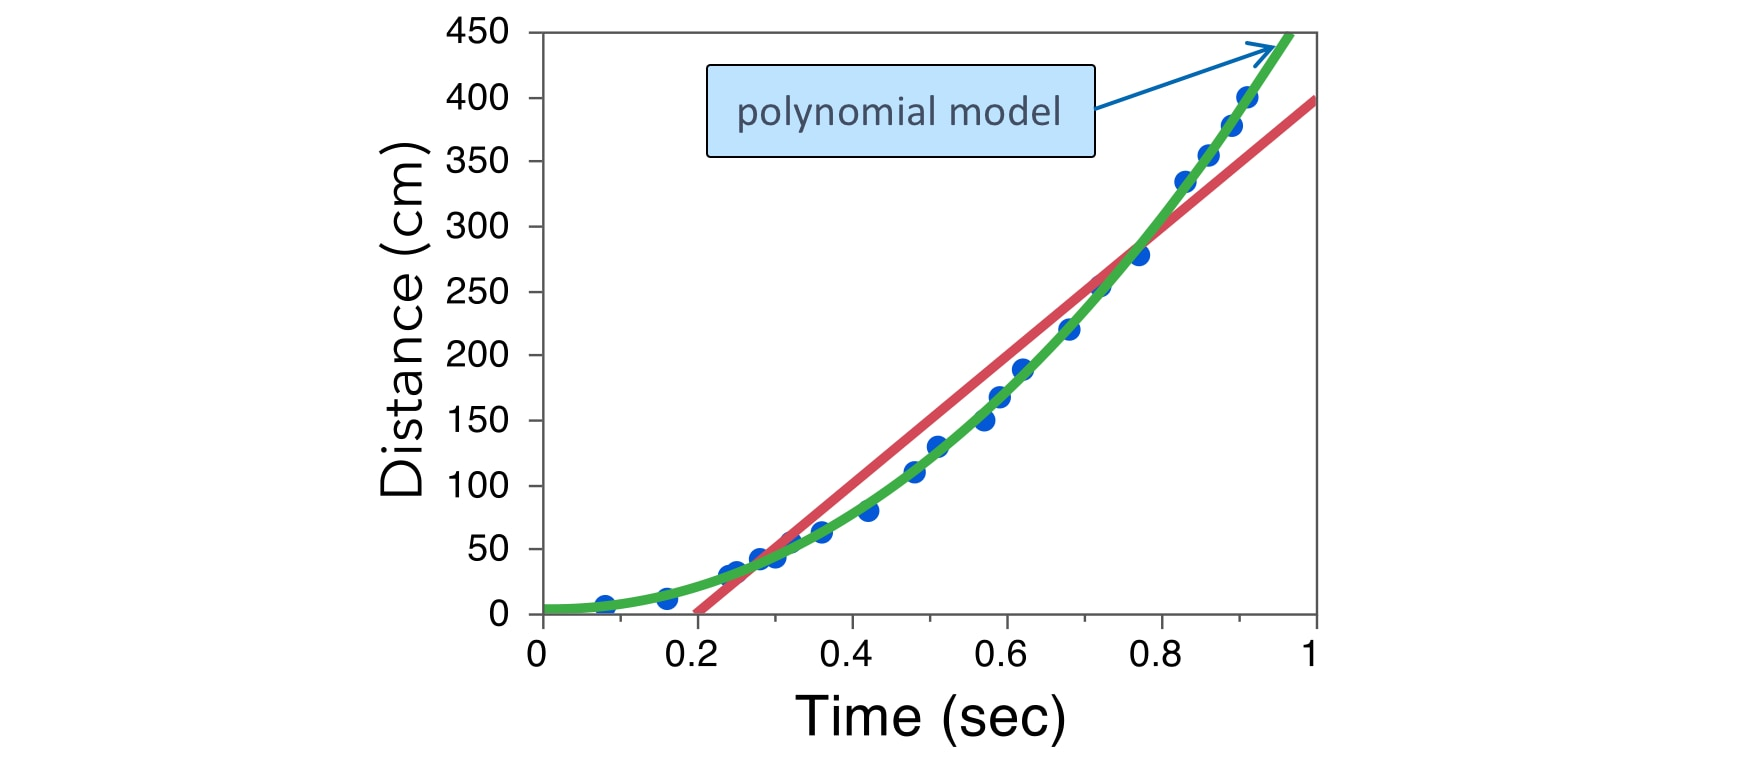 Distance by Time with Polynomial